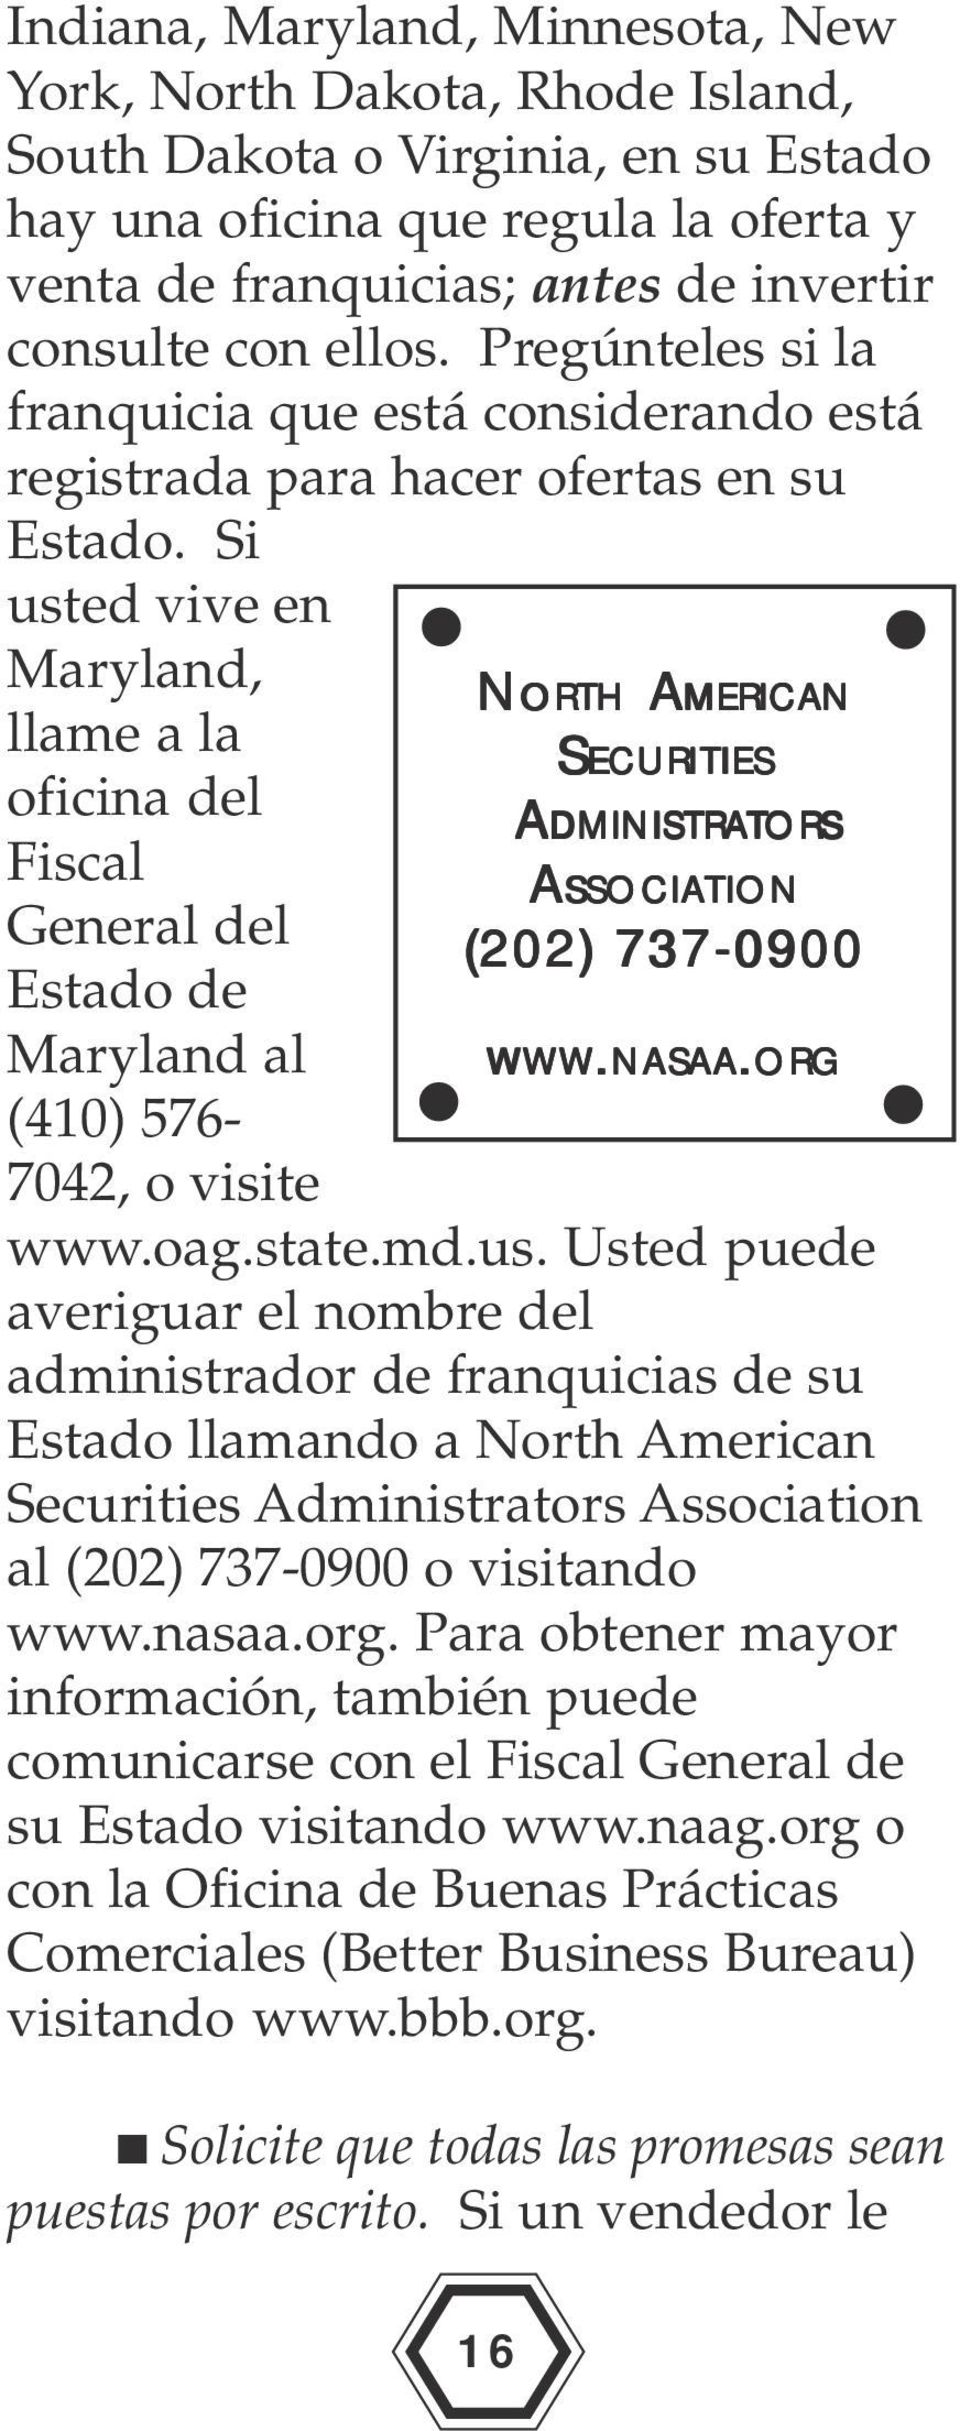 Si usted vive en Maryland, llame a la oficina del Fiscal General del Estado de Maryland al (410) 576-7042, o visite NORTH AMERICAN SECURITIES ADMINISTRA DMINISTRATORS ASSOCIA SSOCIATION (202)